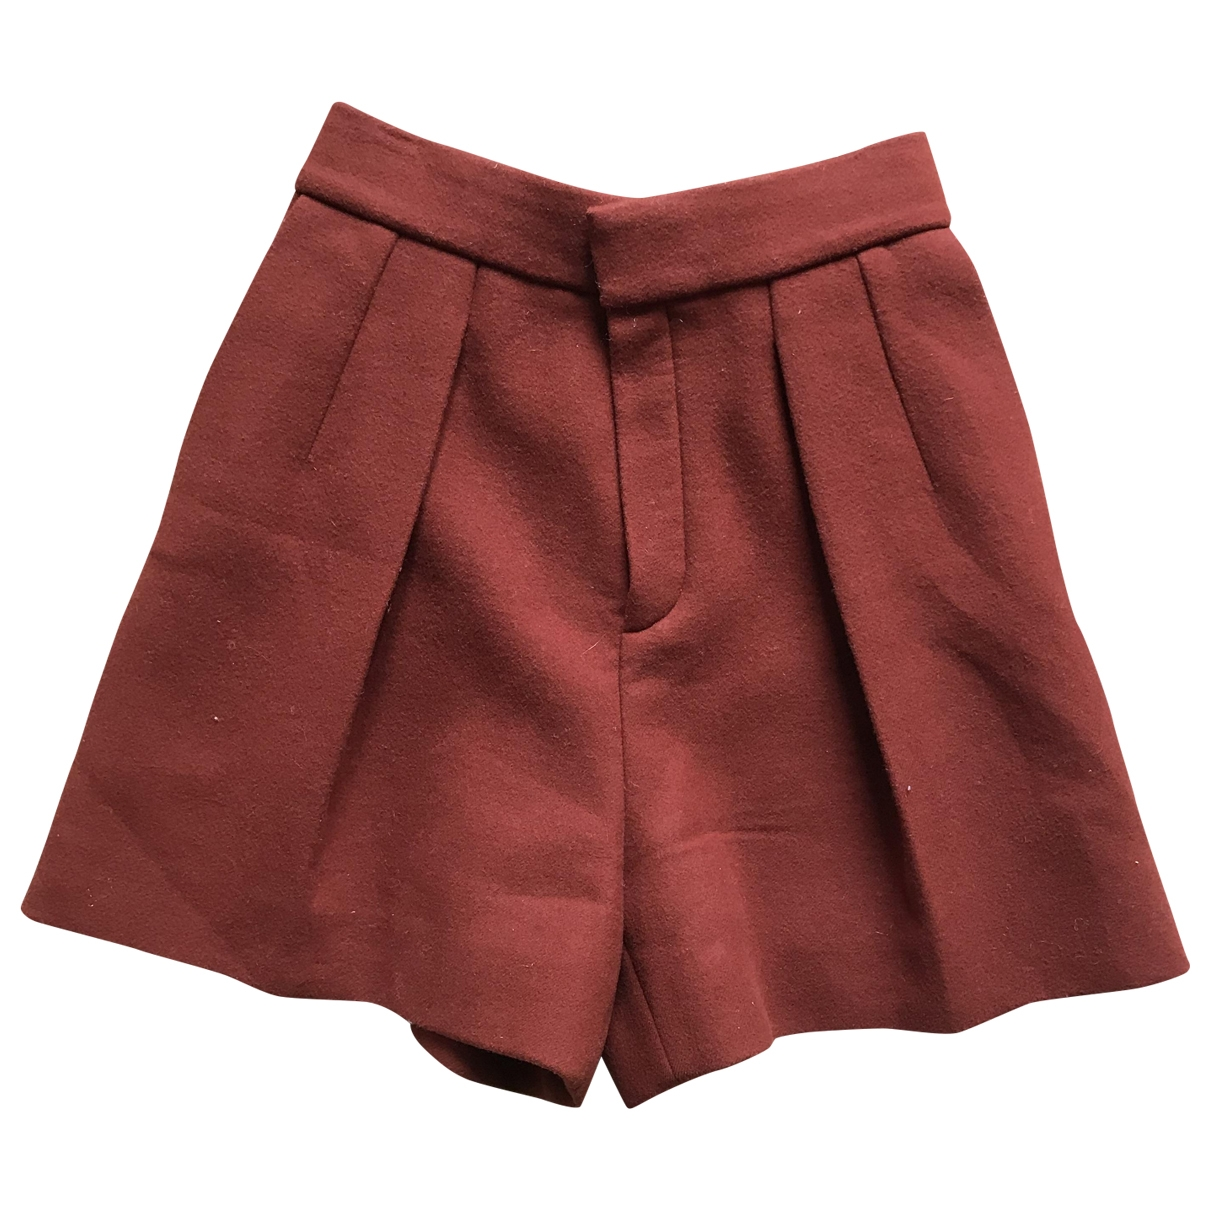 Chloé N Brown Wool Shorts for Women 38 FR